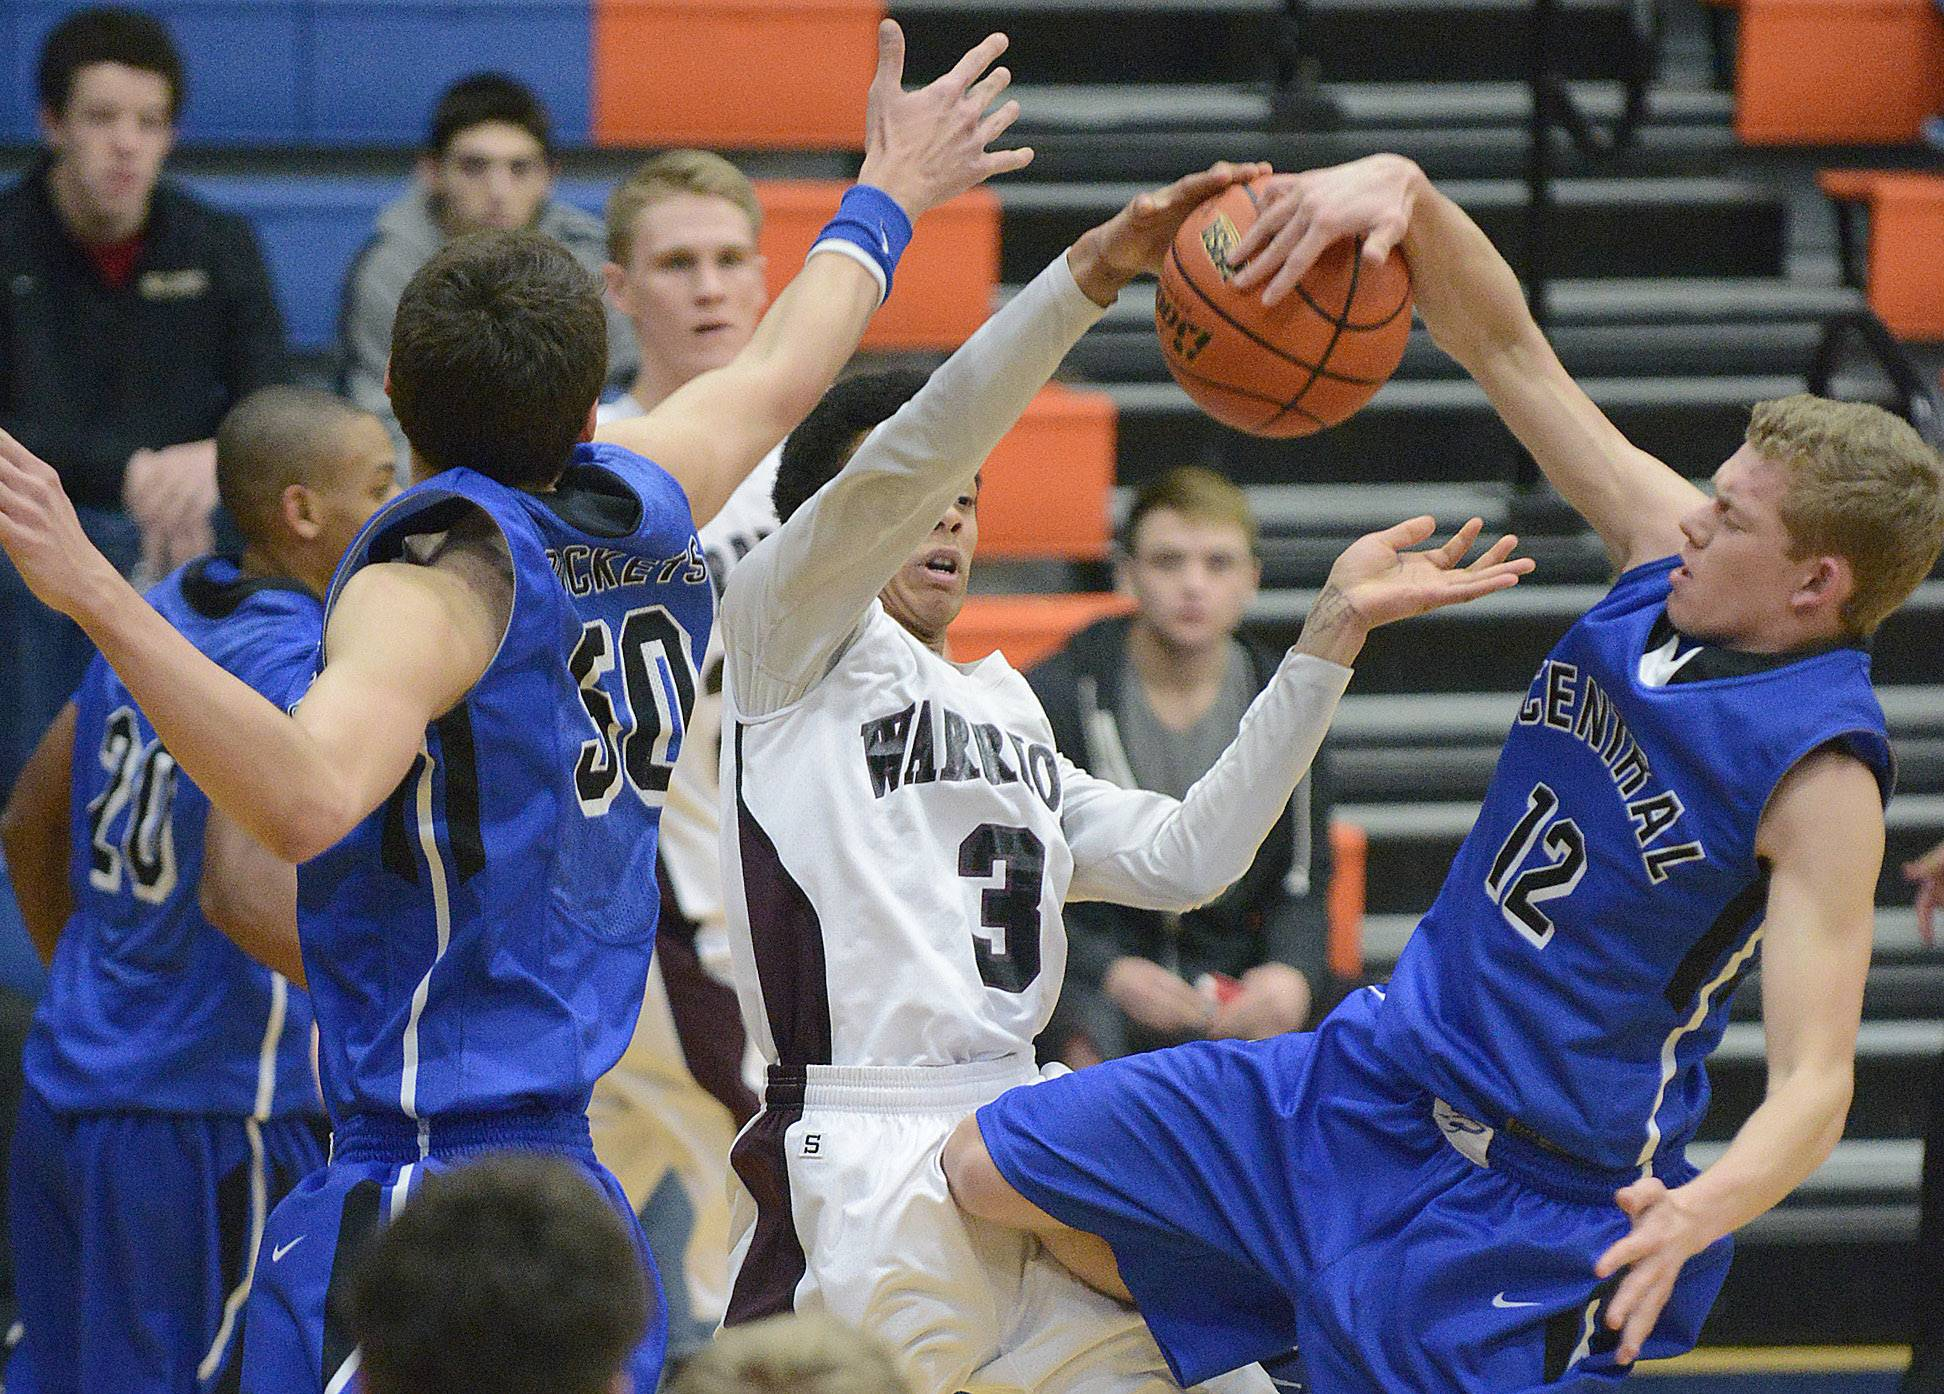 Burlington Central's Stefan Jochum denies Wheaton Academy's Christian Smith a shot in the third quarter.